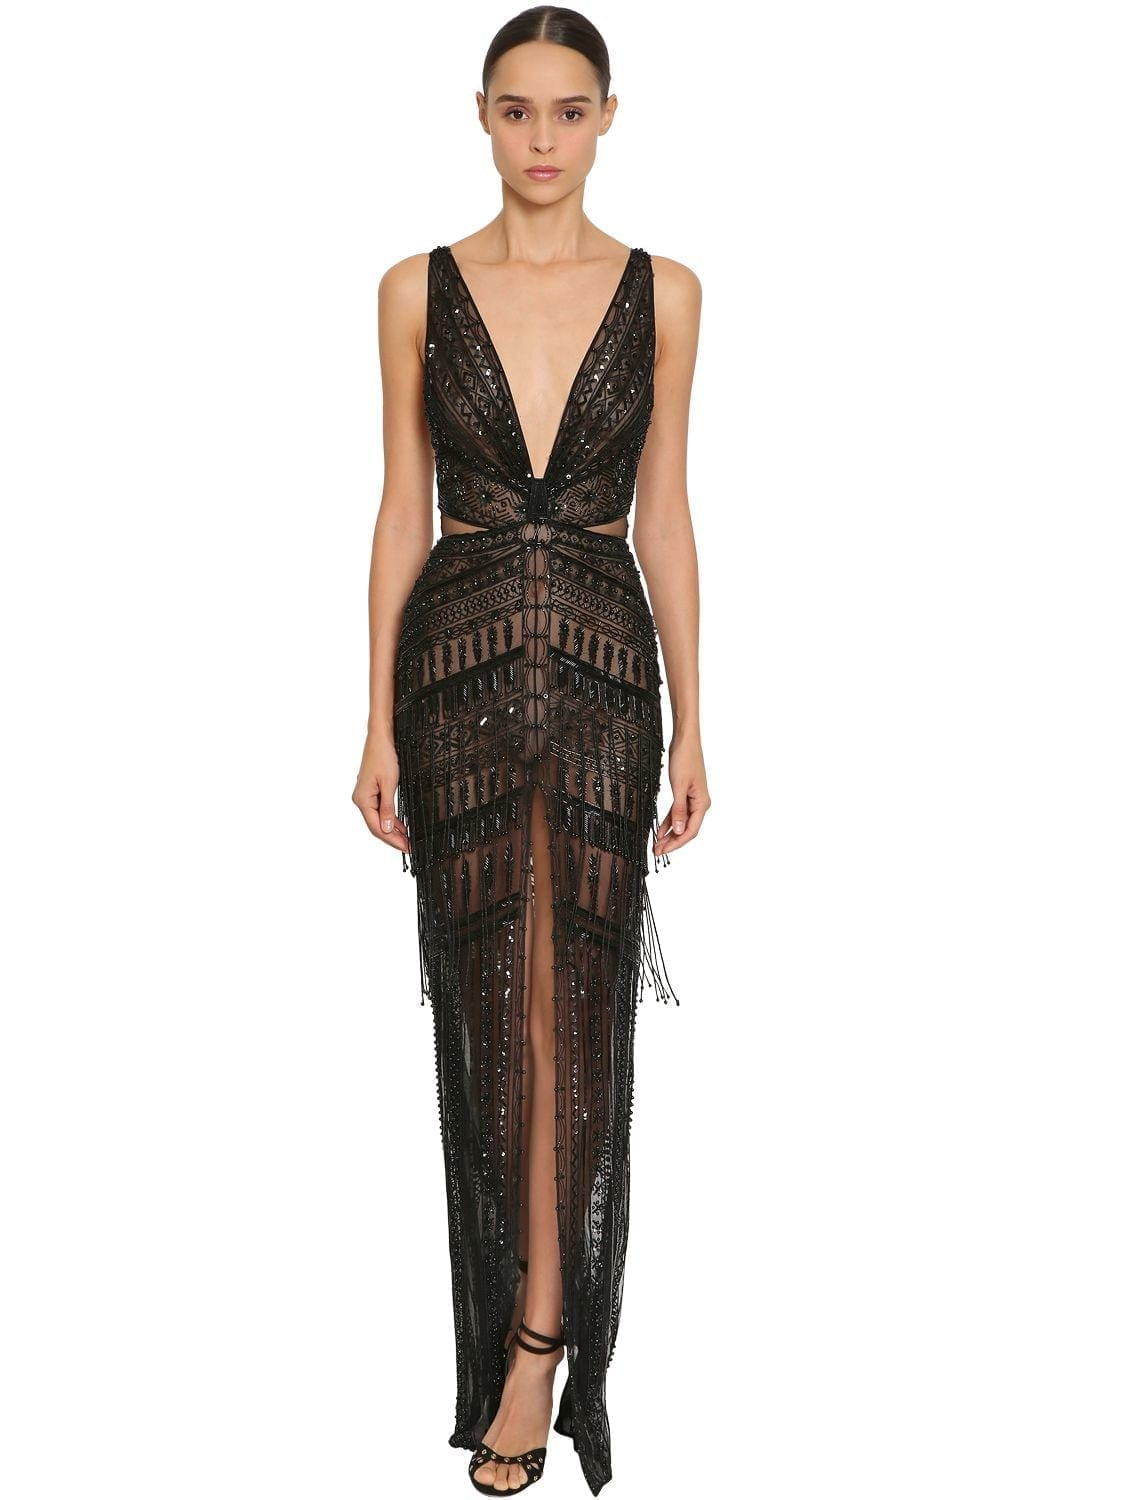 acdc22d4145 ZUHAIR MURAD Long Embellished V Neck Black Dress - We Select Dresses